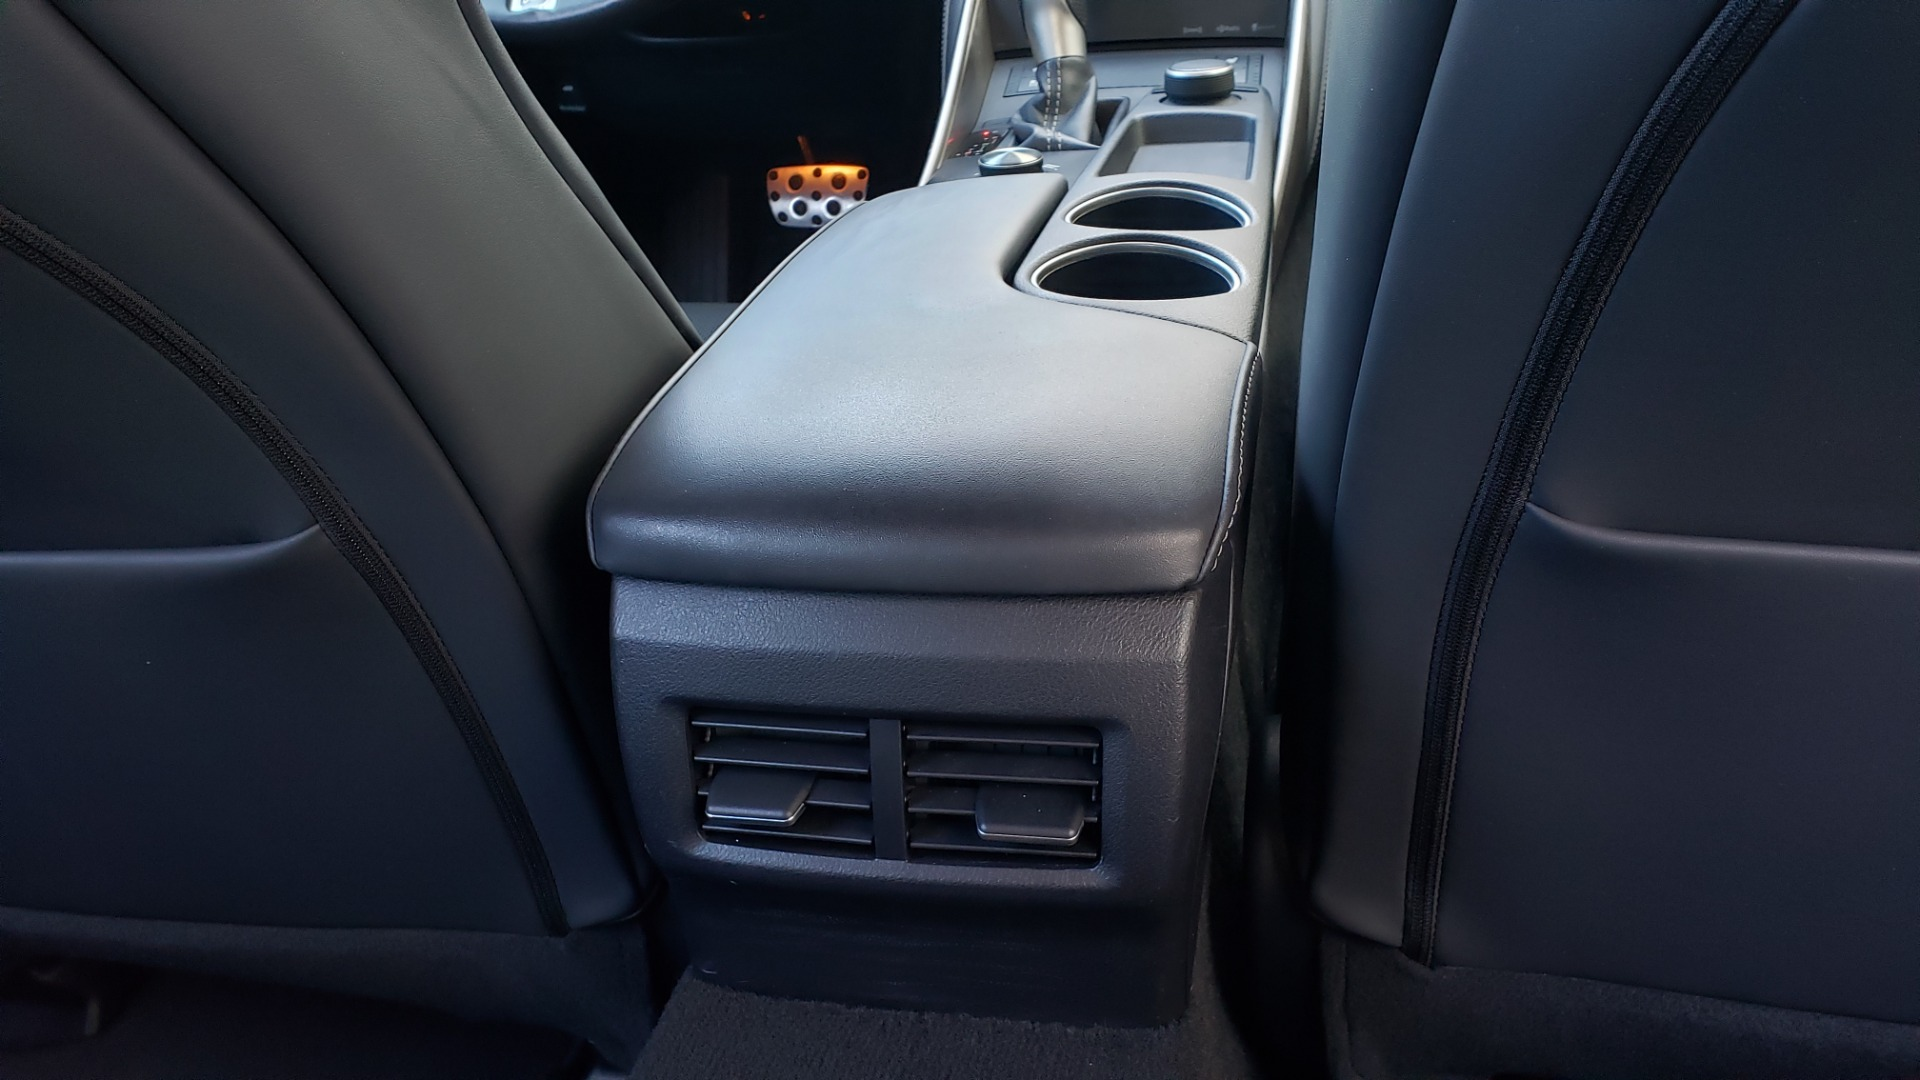 Used 2015 Lexus IS 250 F-SPORT / BSM / SUNROOF / VENT SEATS / REARVIEW for sale Sold at Formula Imports in Charlotte NC 28227 76